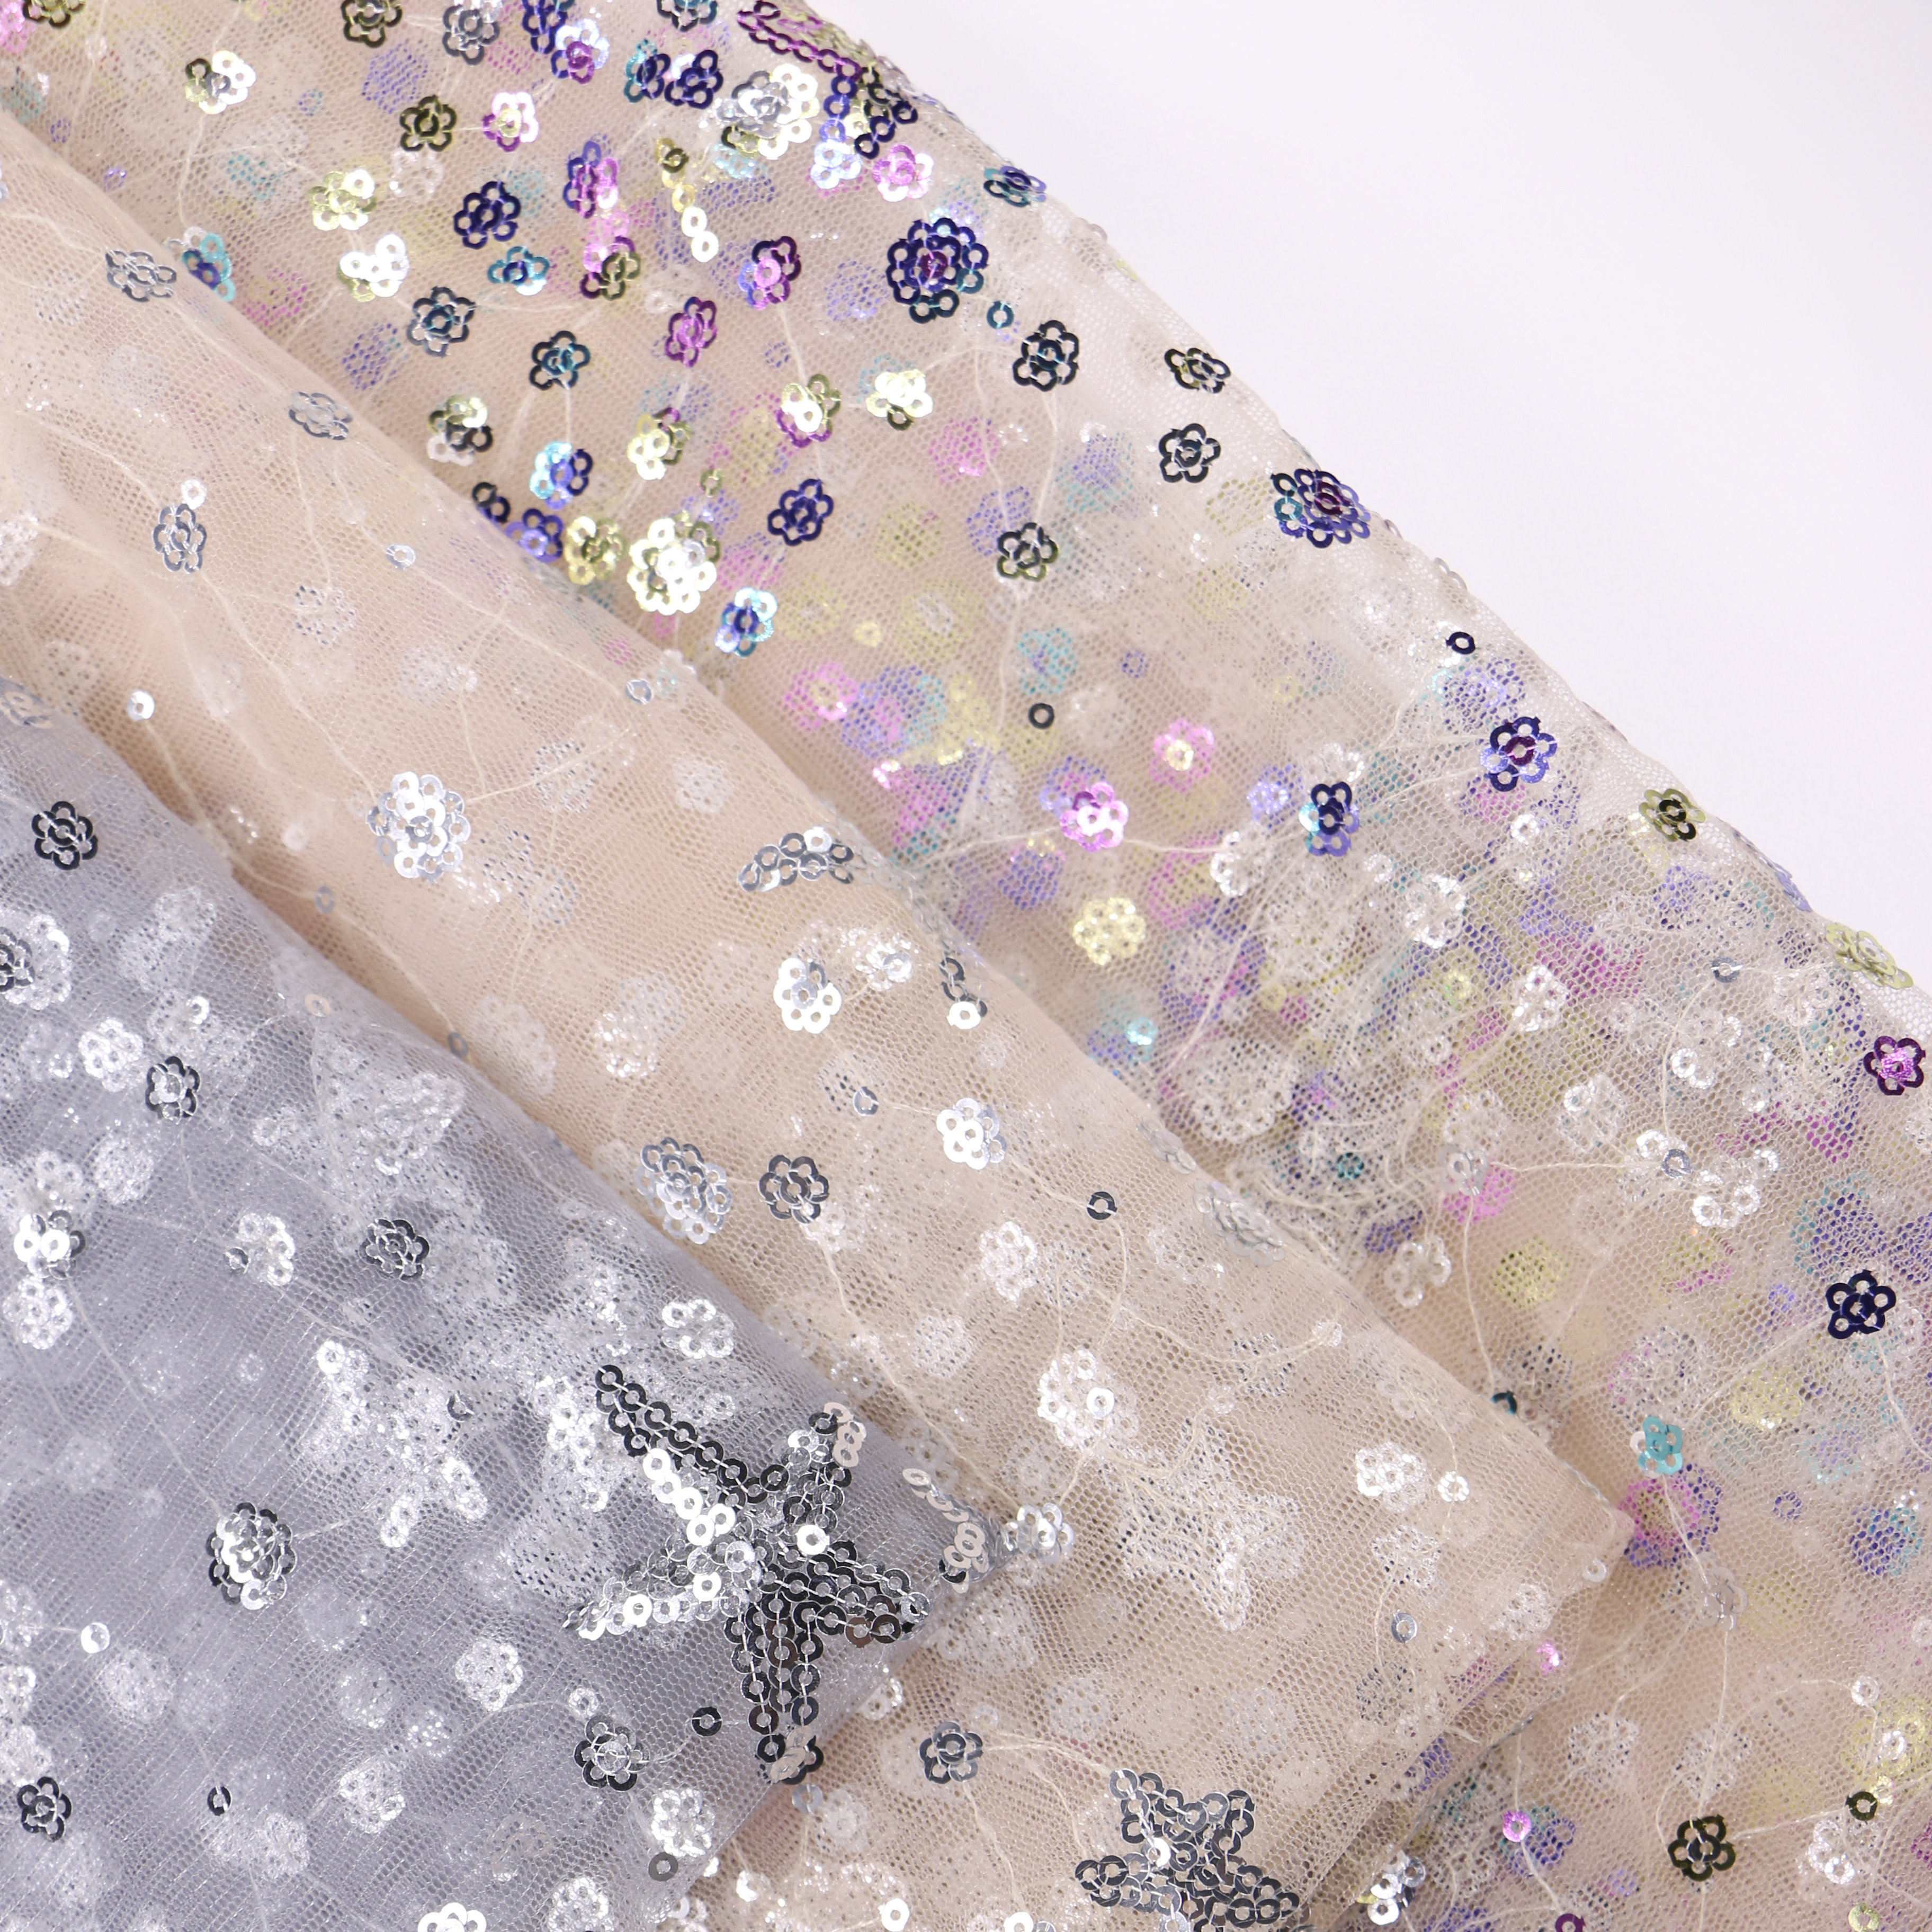 Star Glitter Floral Factory Wholesale Sequin Tulle Fabric